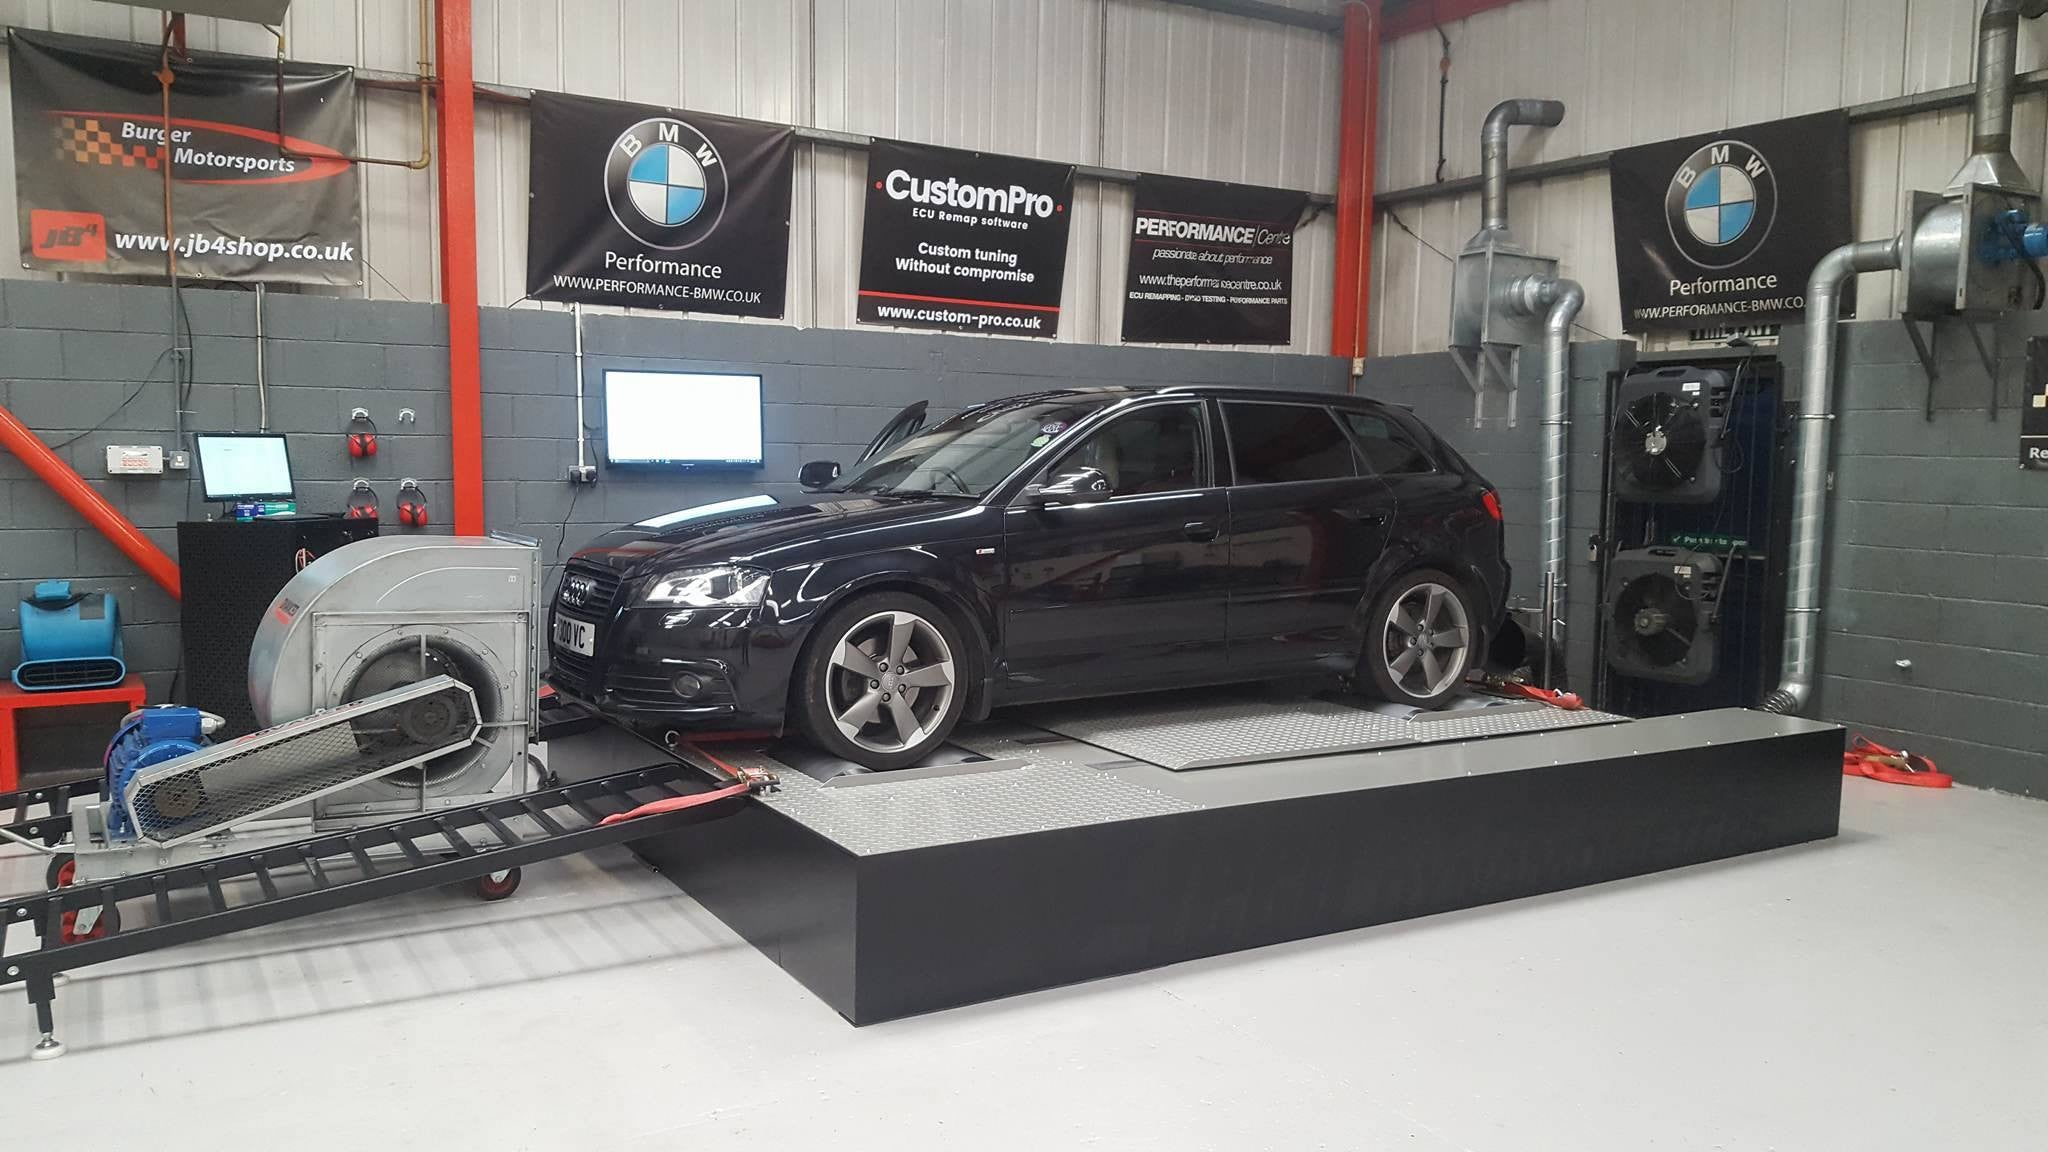 Audi A3 2.0 170 Quattro - CustomPro remap